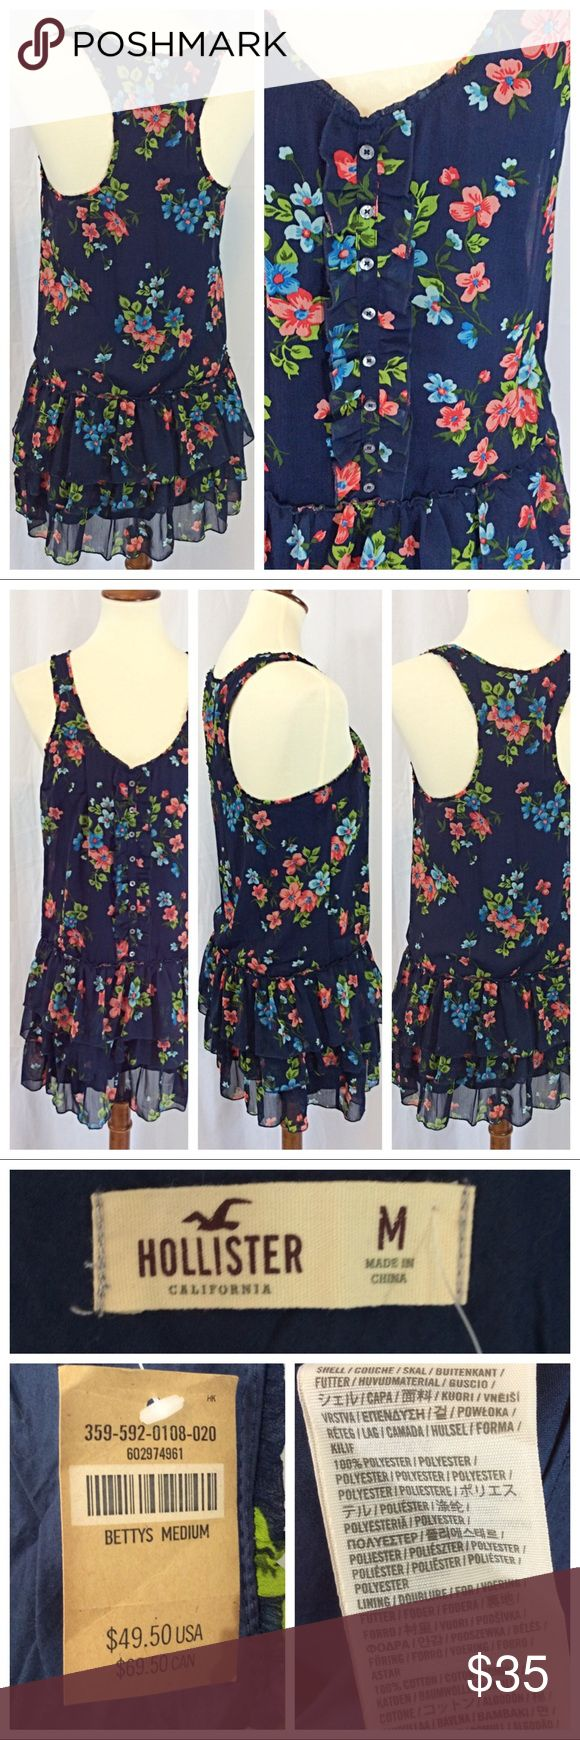 """NWT - Hollister Floral Ruffle Dress Super cute flirty summer dress with playful ruffles, all in a fun floral pattern. Sleeveless with racerback design, layers of ruffles below waistline. Fully lined for completeness. Size M, 17.5"""" chest when laying flat, 34"""" total length. Excellent unworn condition Hollister Dresses"""